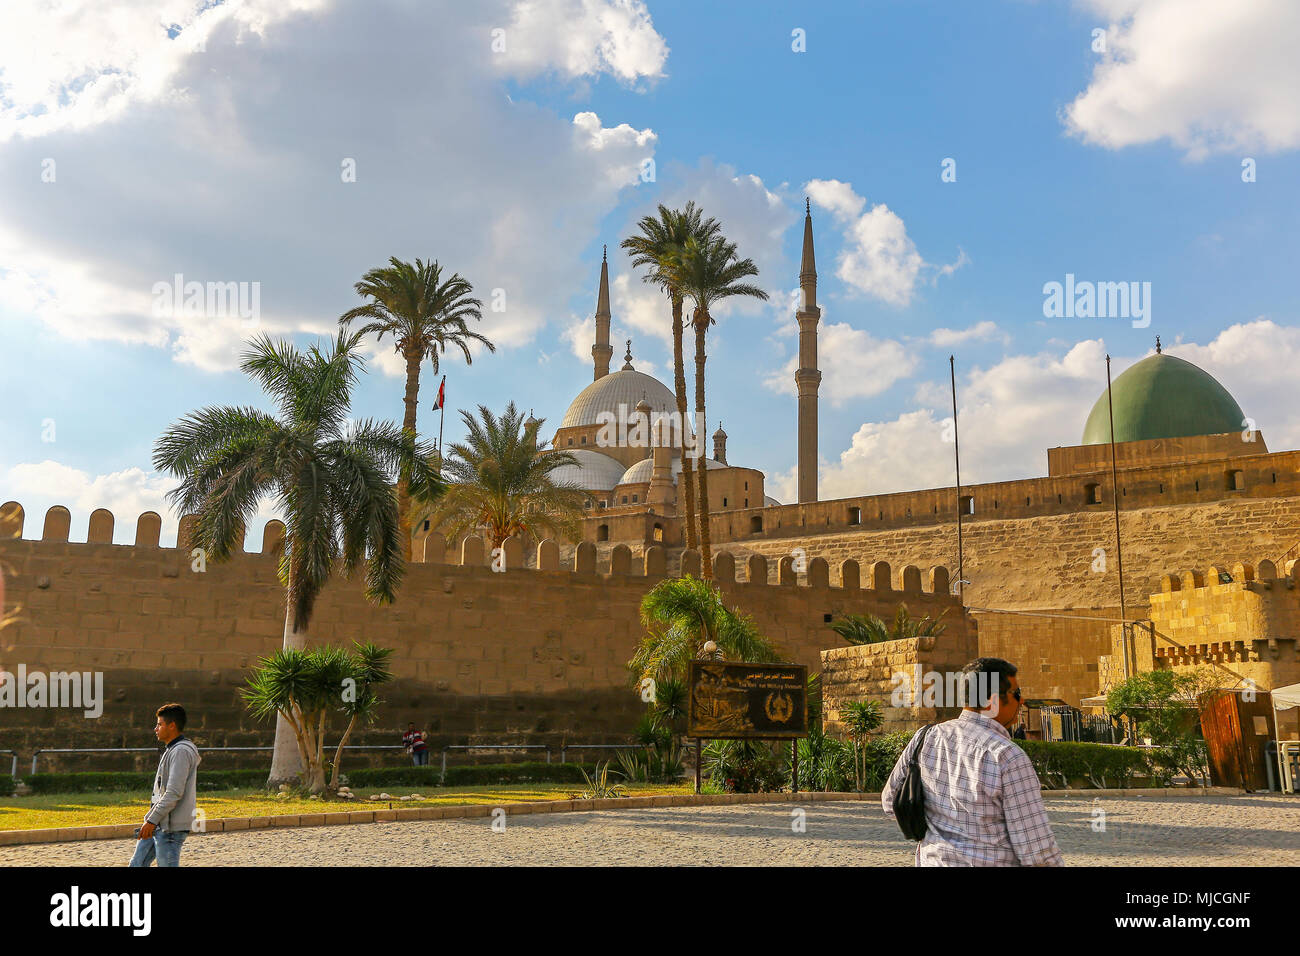 The Saladin Citadel of Cairo on Mokattam hill near the city centre, is a medieval Islamic fortification in Cairo, Egypt, Africa - Stock Image